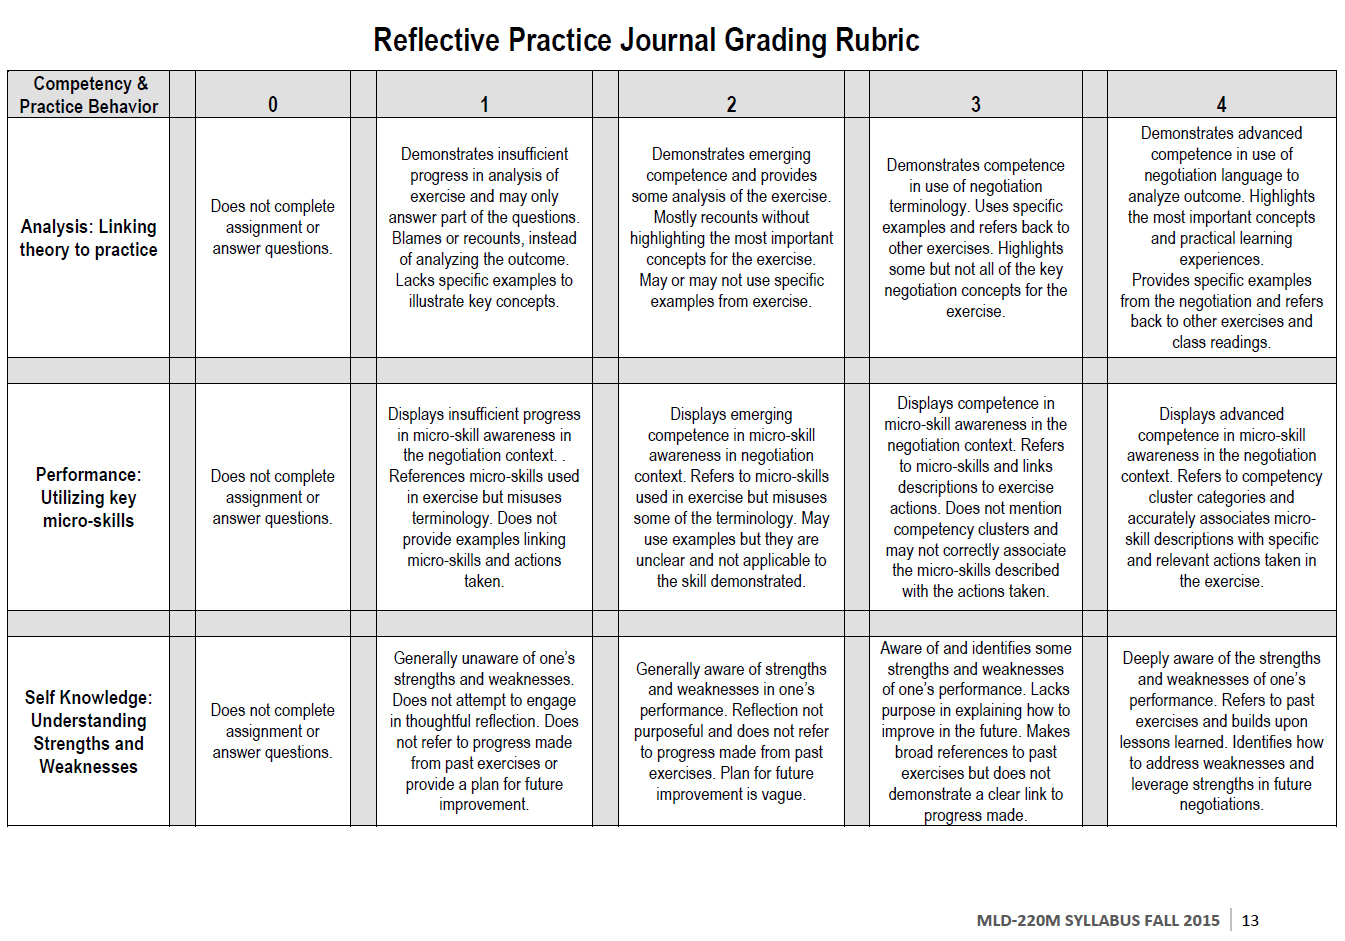 Grading Rubric for Harvard MLD220M Reflective Practice Journal